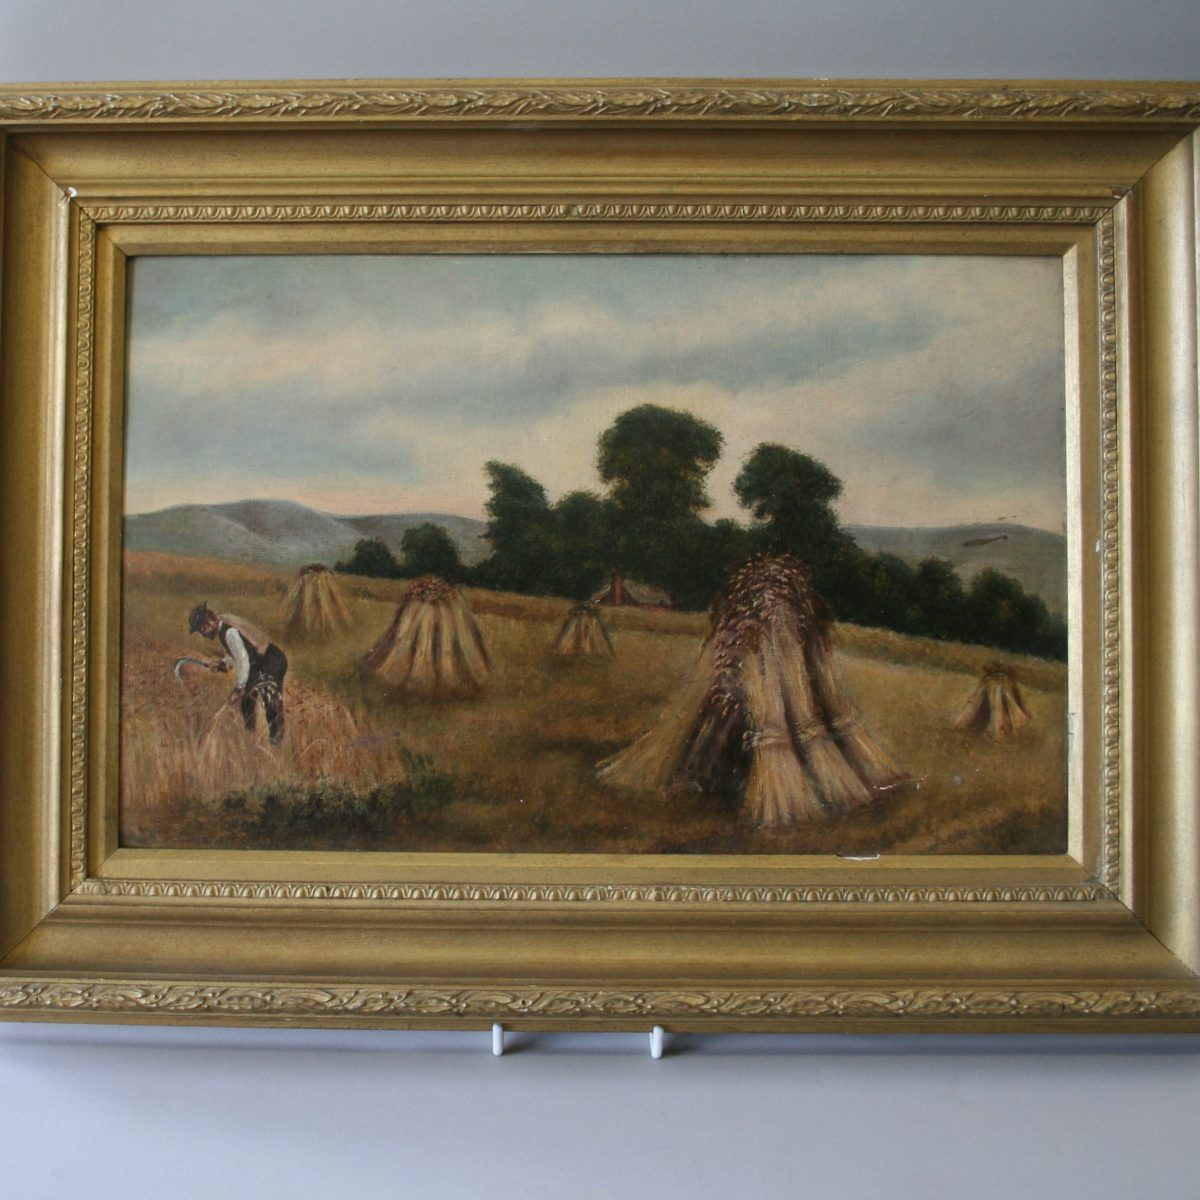 oil on canvass of a man in a corn field